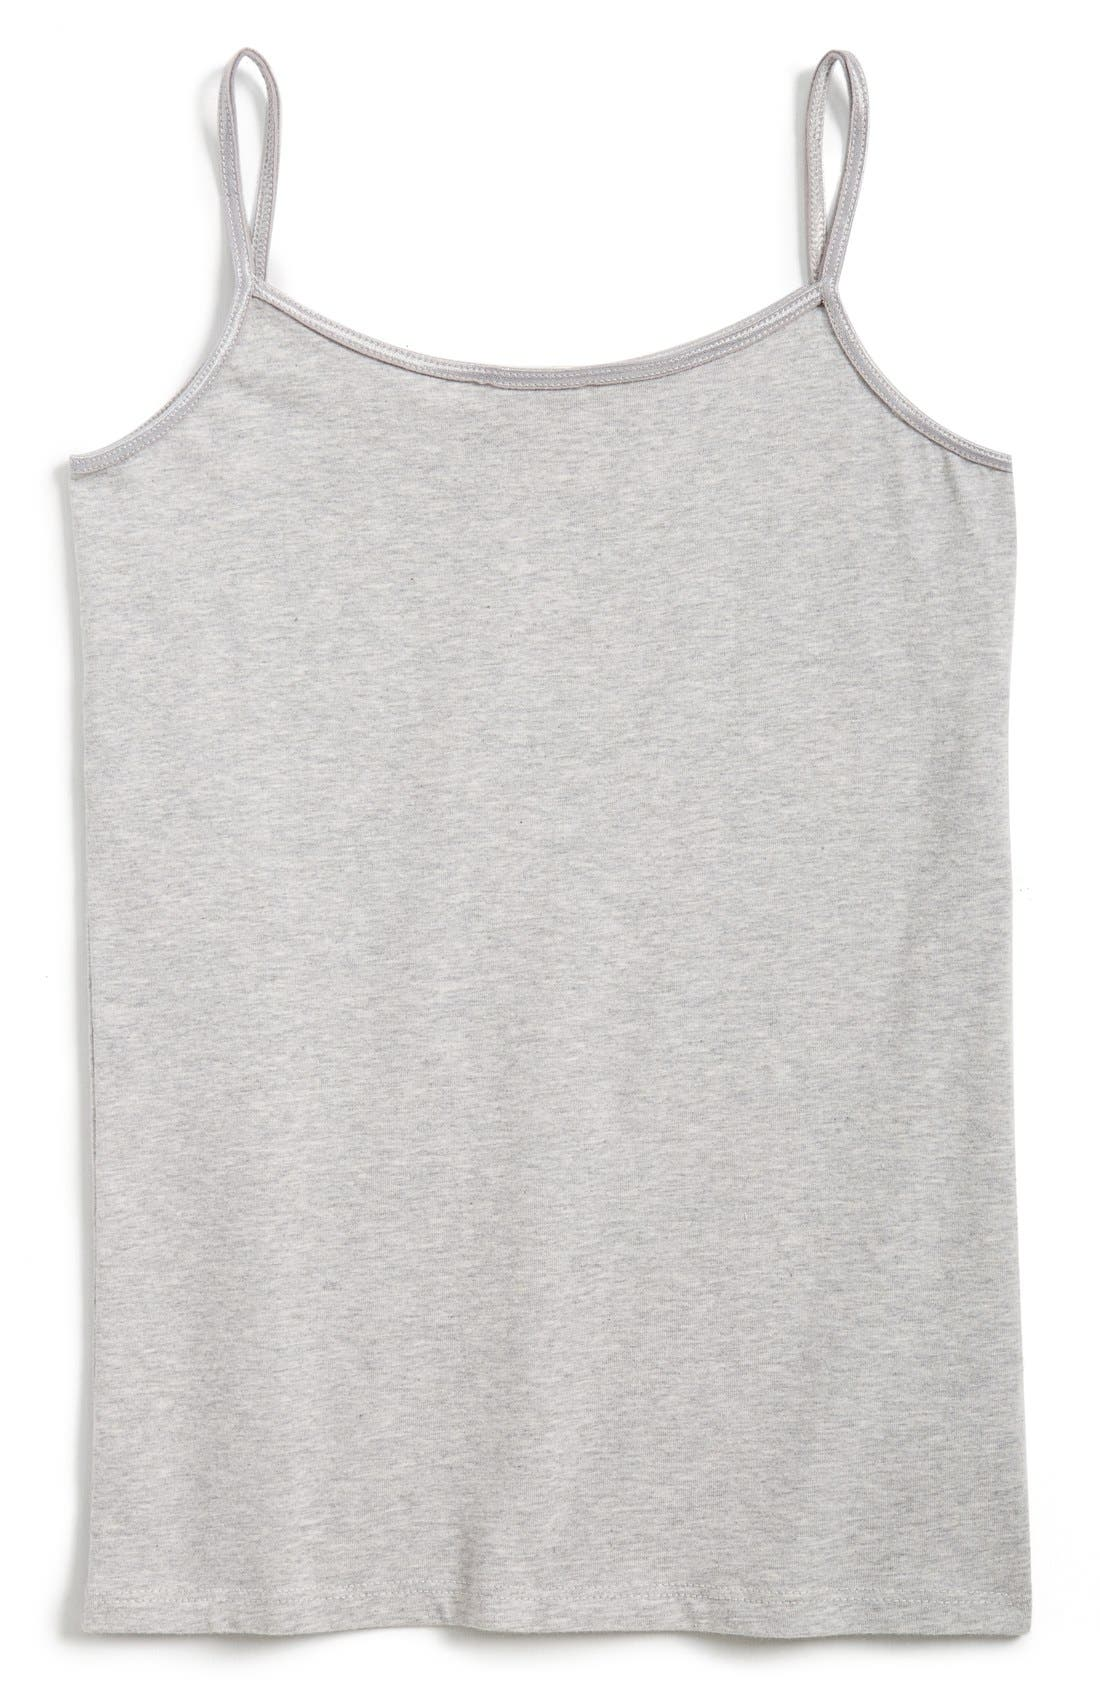 Heathered Long Camisole,                         Main,                         color, Grey Ash Heather